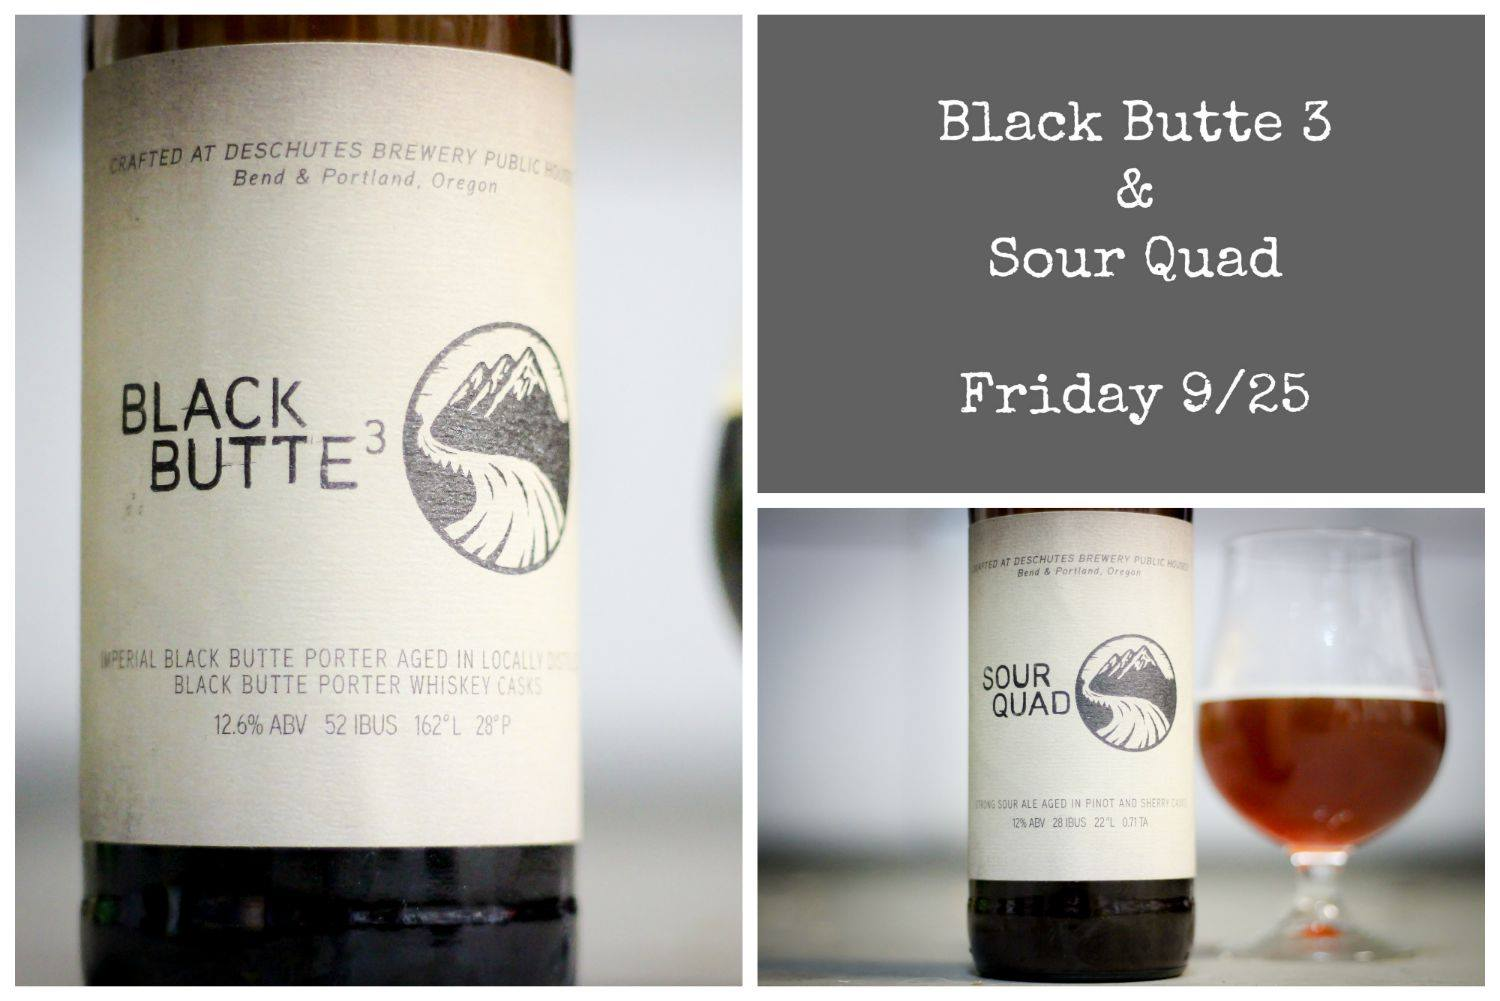 Deschutes Brewery Black Butte³ & Sour Quad Release